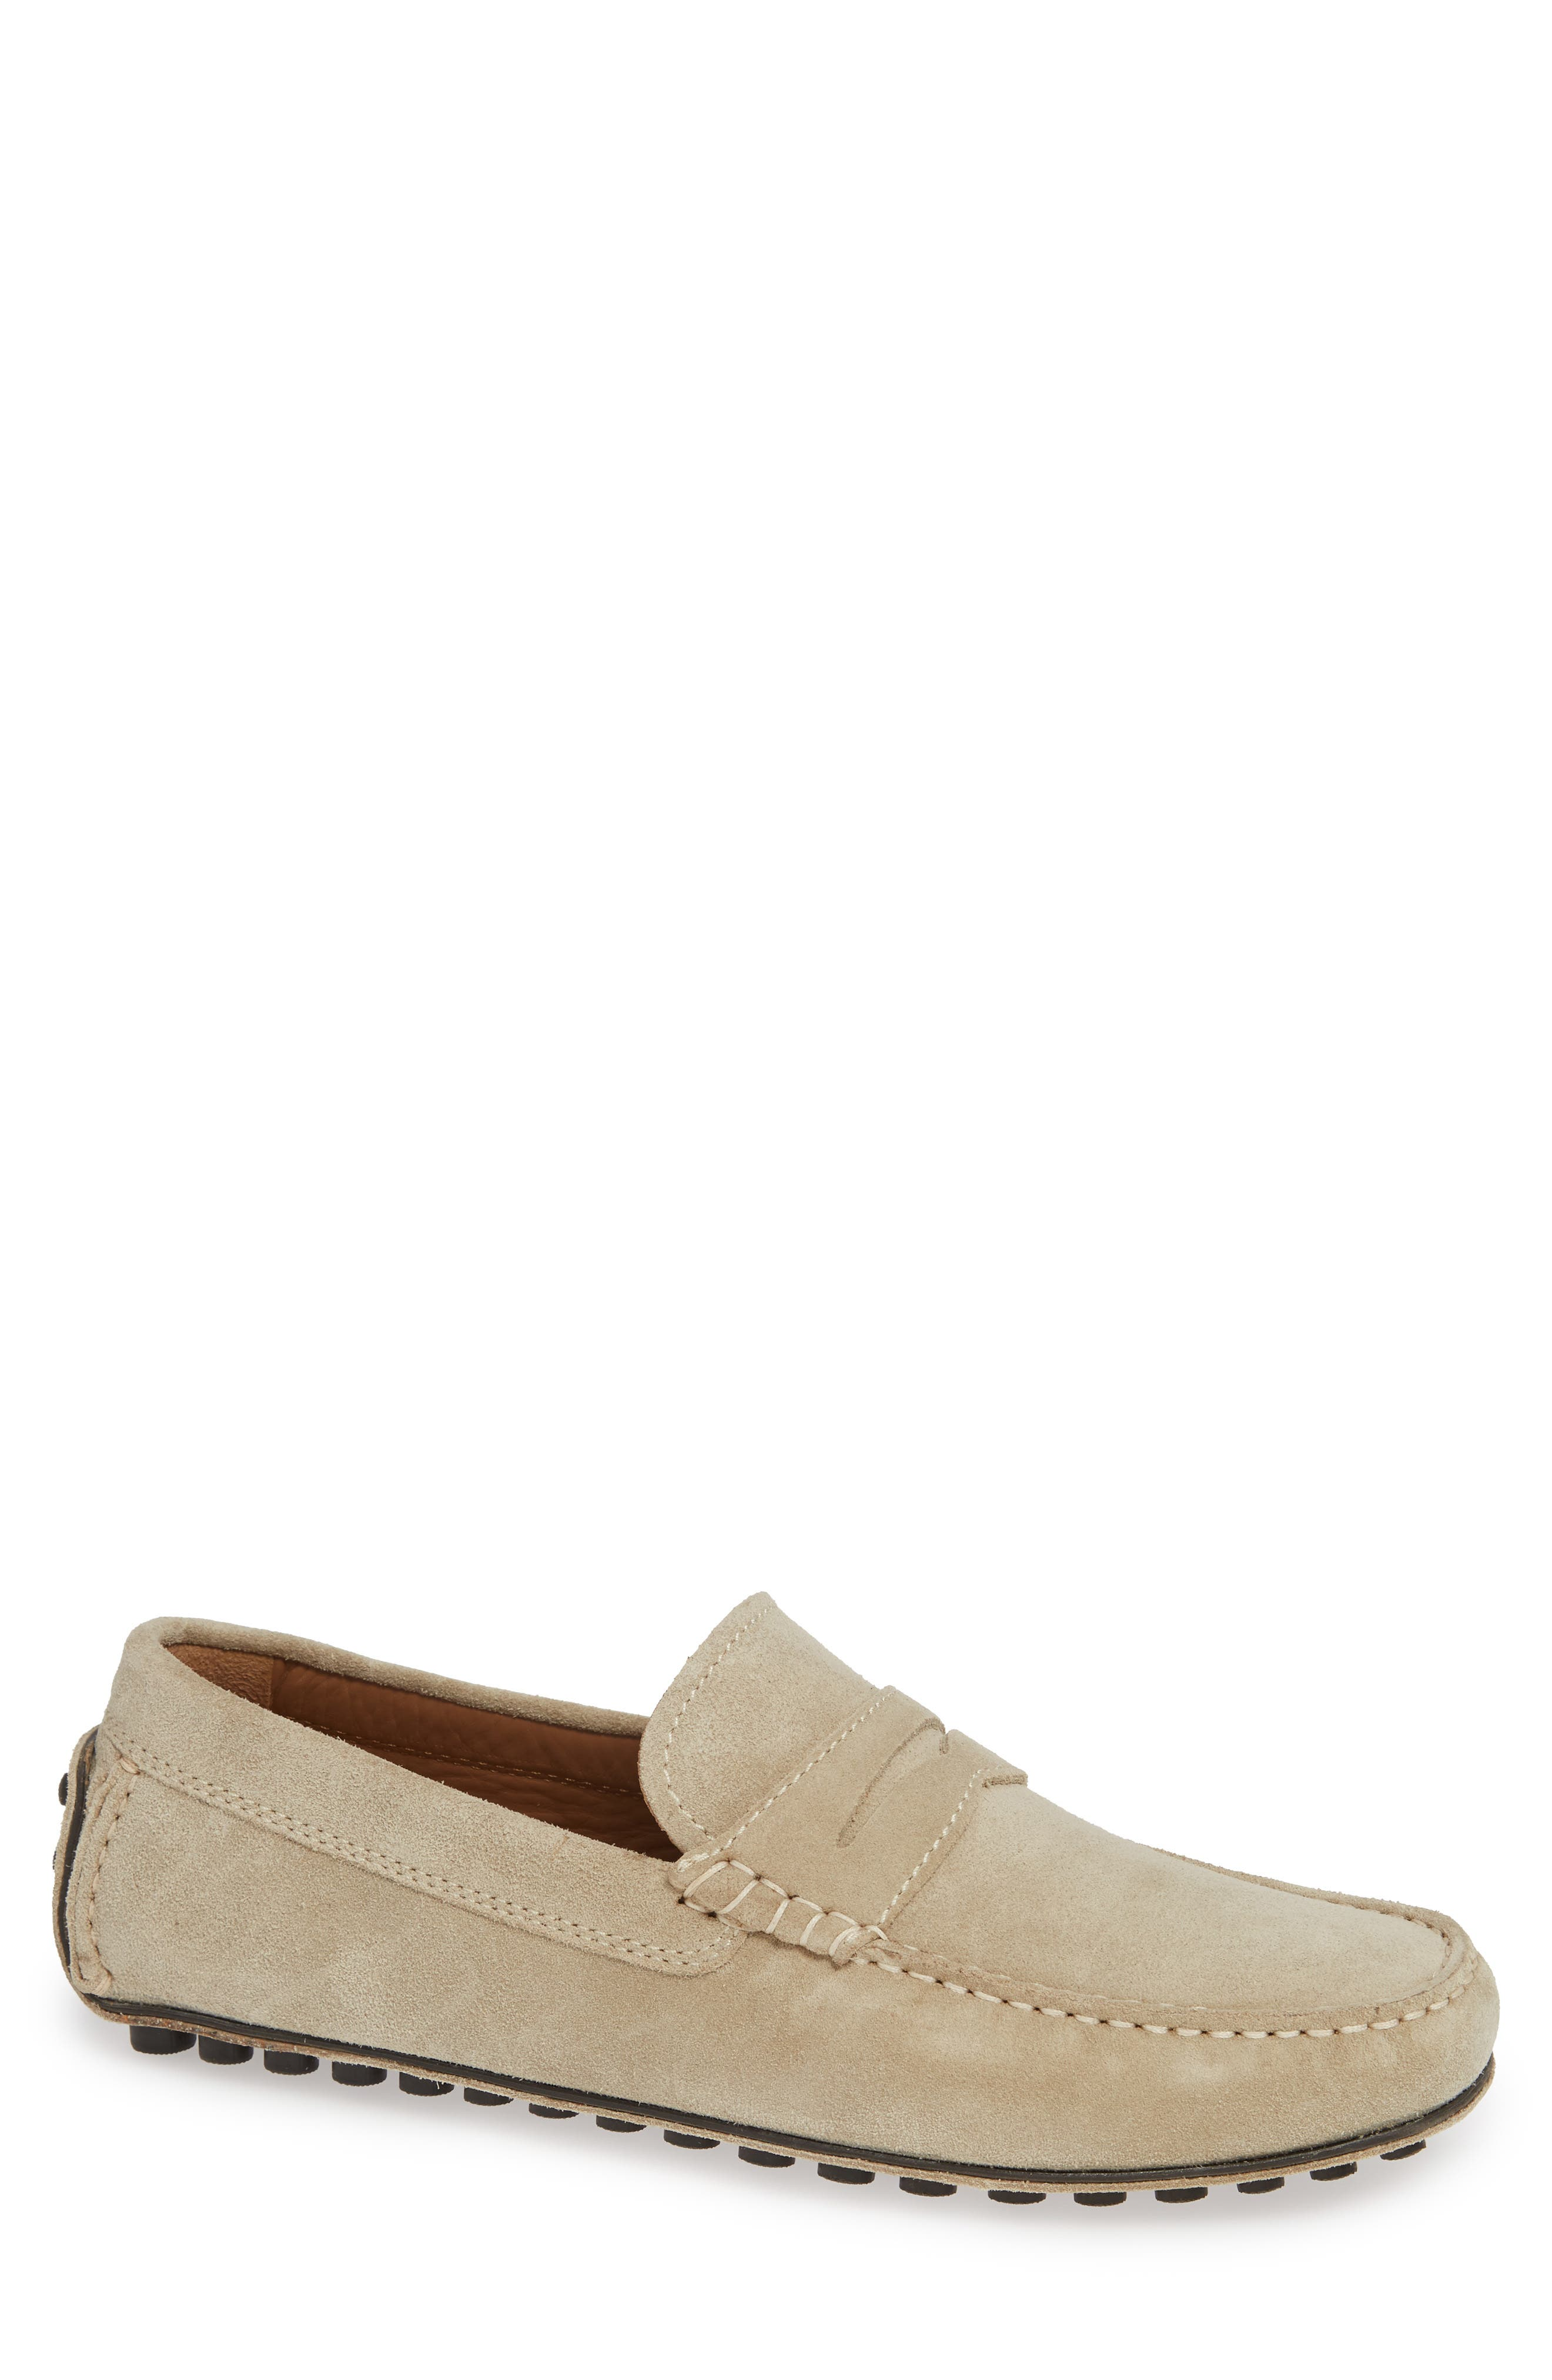 ROBERT TALBOTT Le Mans Penny Driving Loafer in Sand Suede / Leather